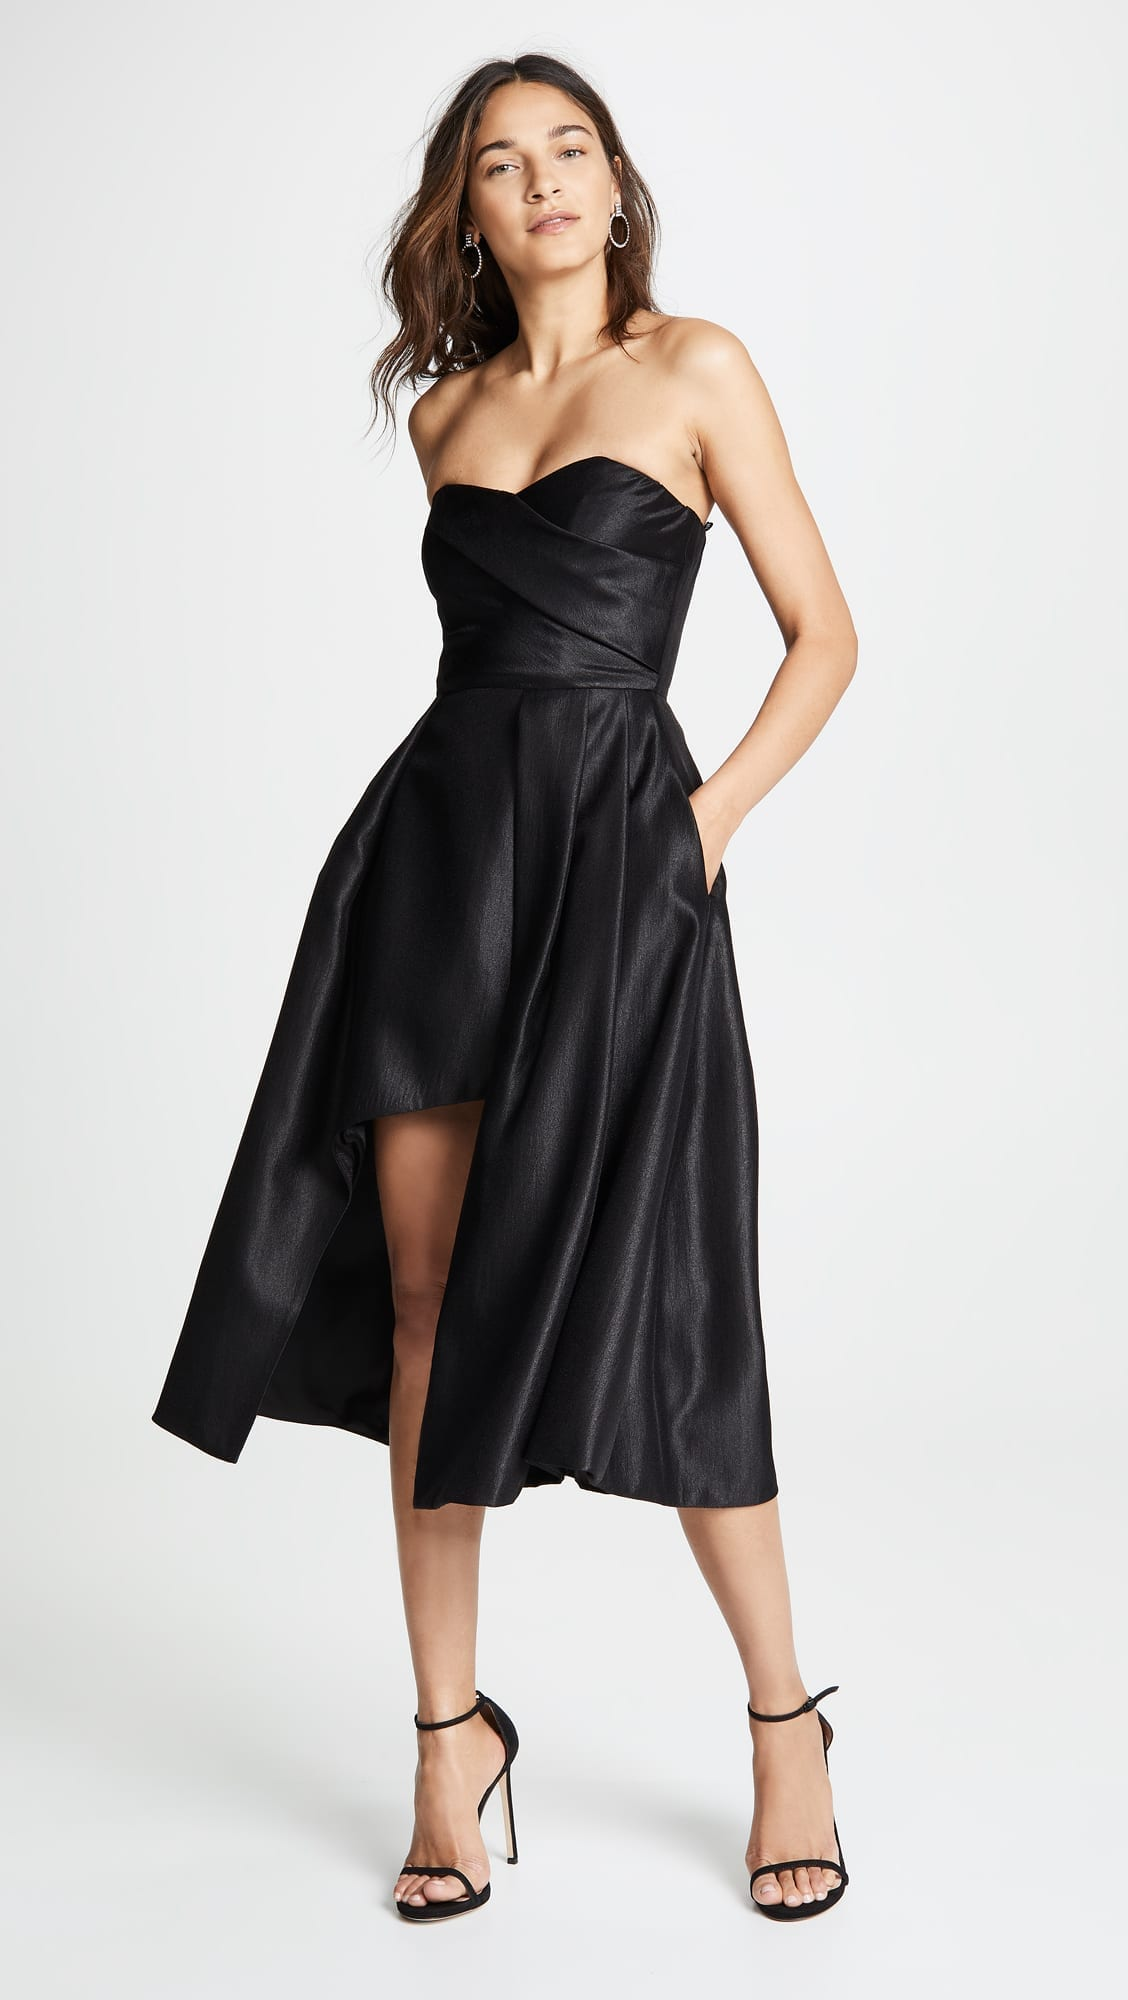 BLACK HALO Caine Black Dress